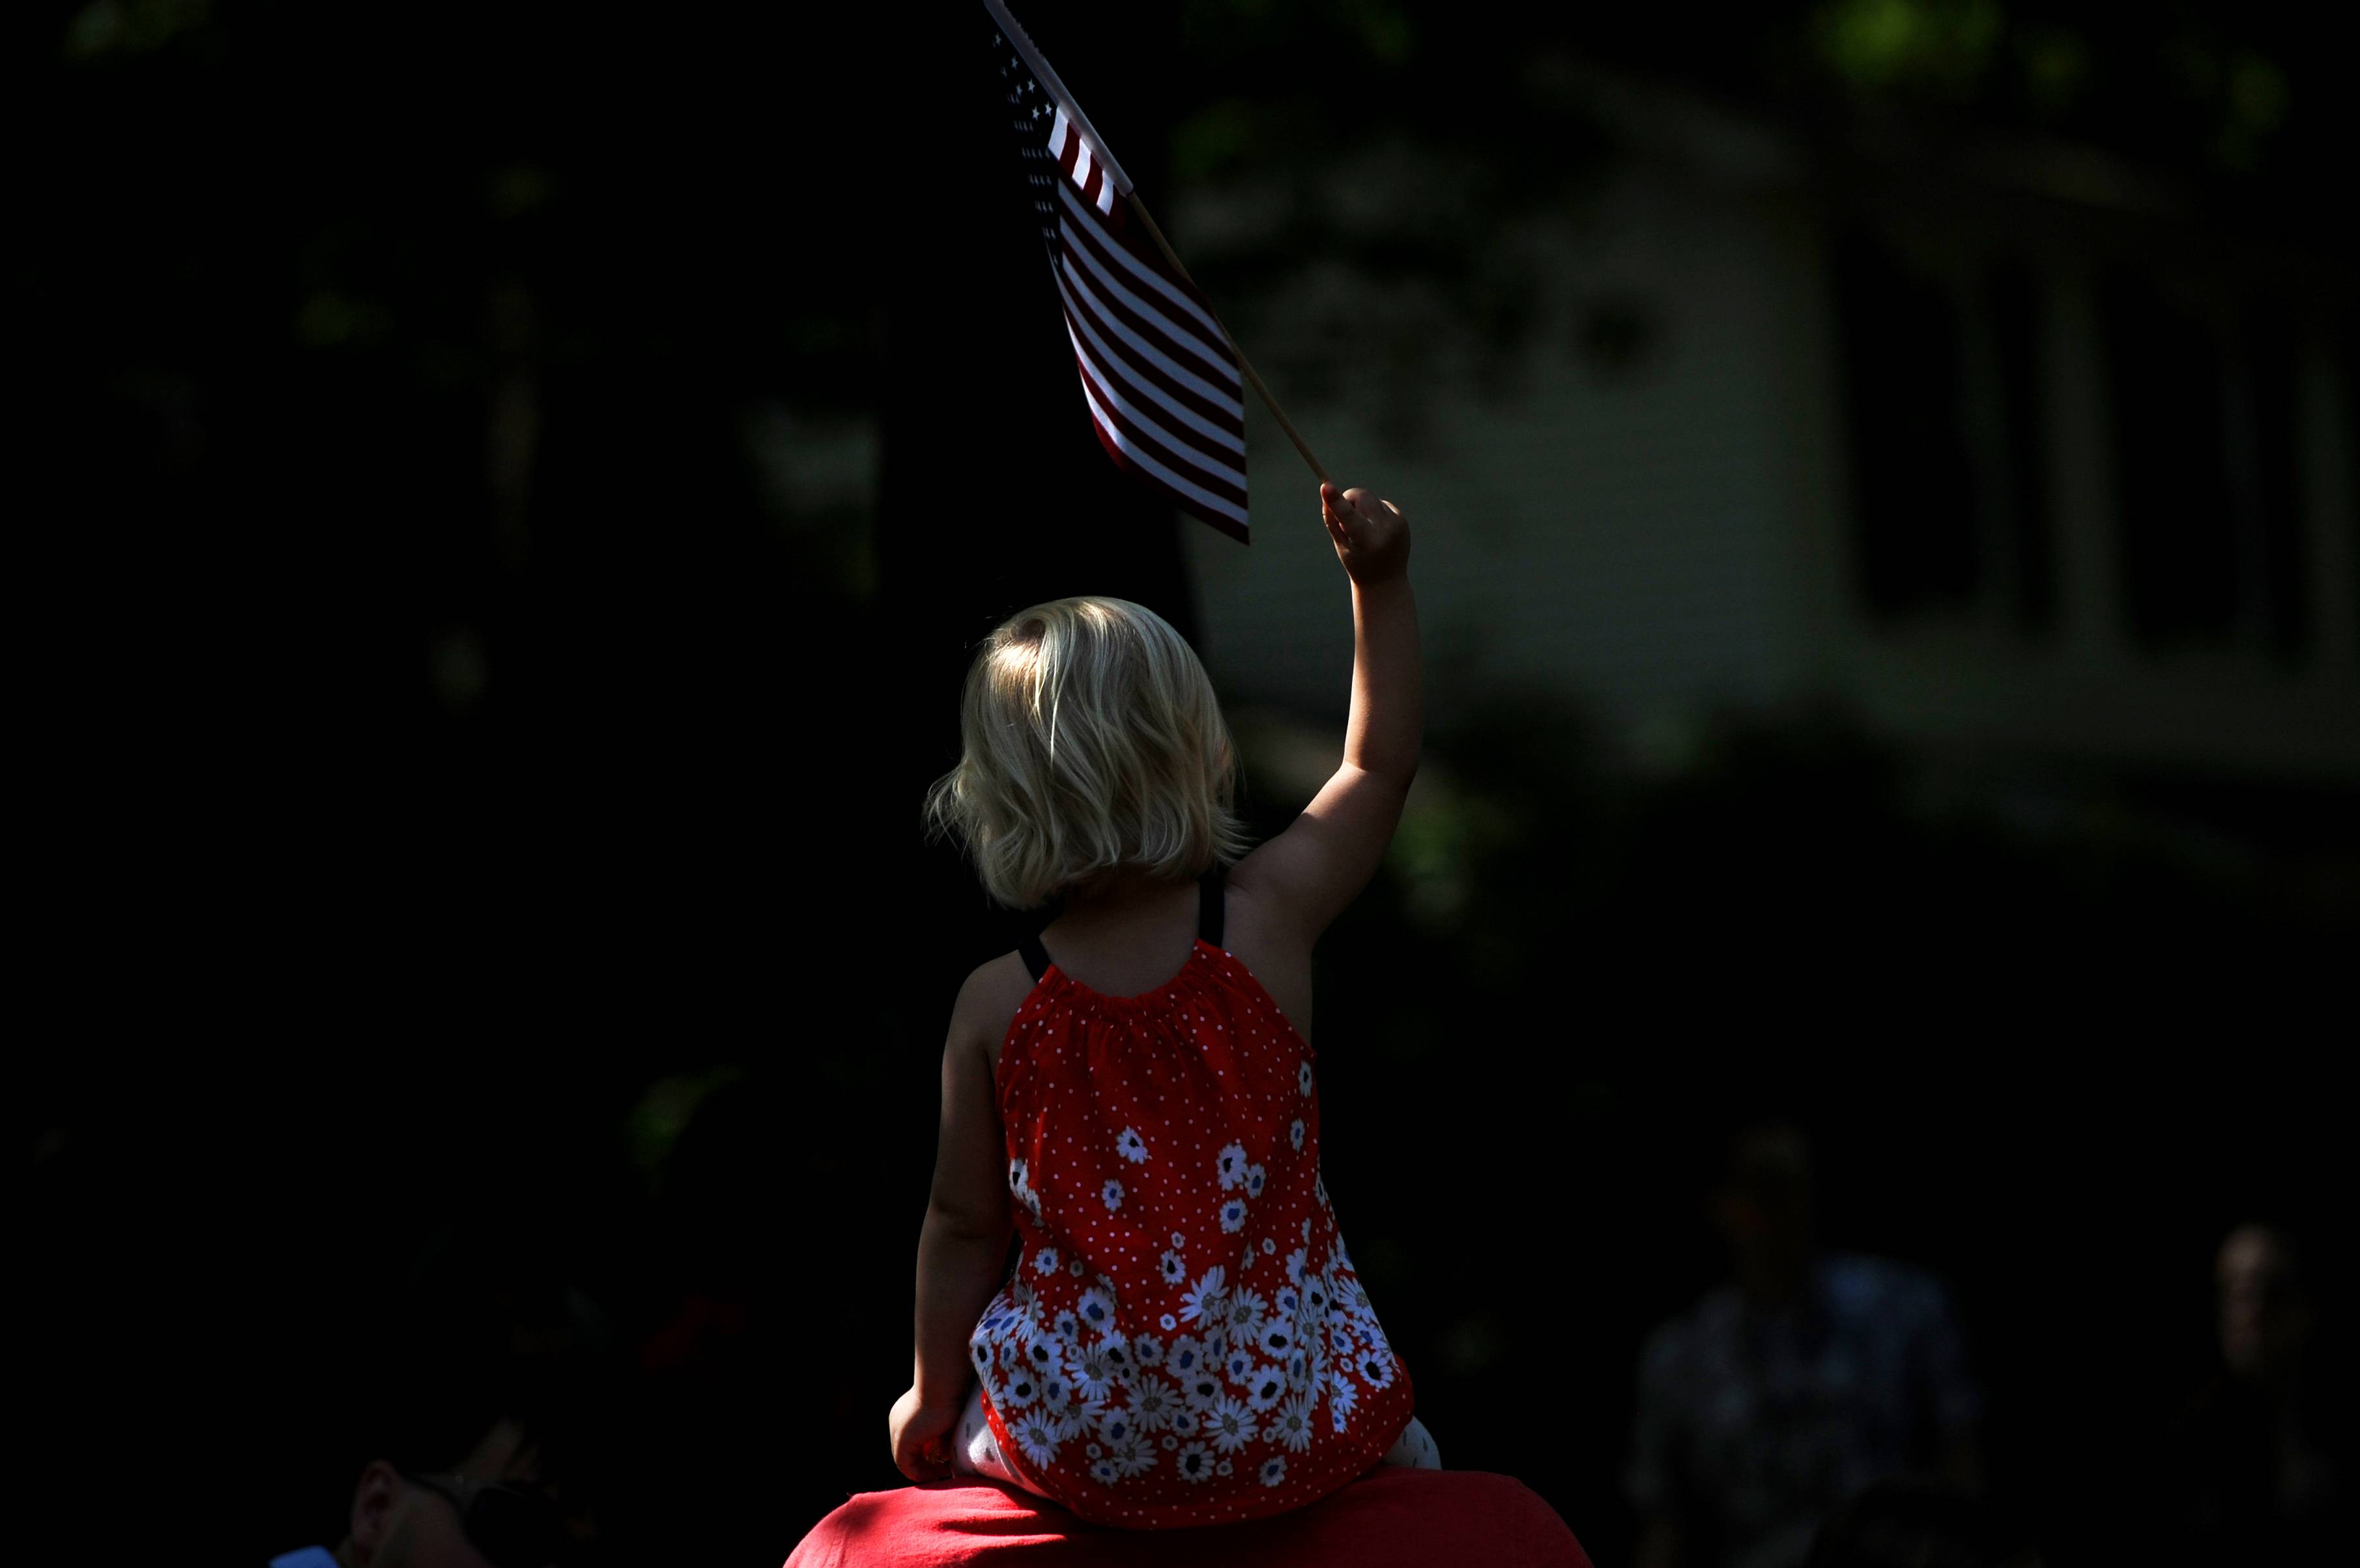 Emilia Thorsson, 2, waves an American flag as she sits on top of her father Thor's shoulders during the Glacier Highlands Memorial Day parade in the Glacier Highlands neighborhood in Ann Arbor, Mich., Monday, May 26, 2014.